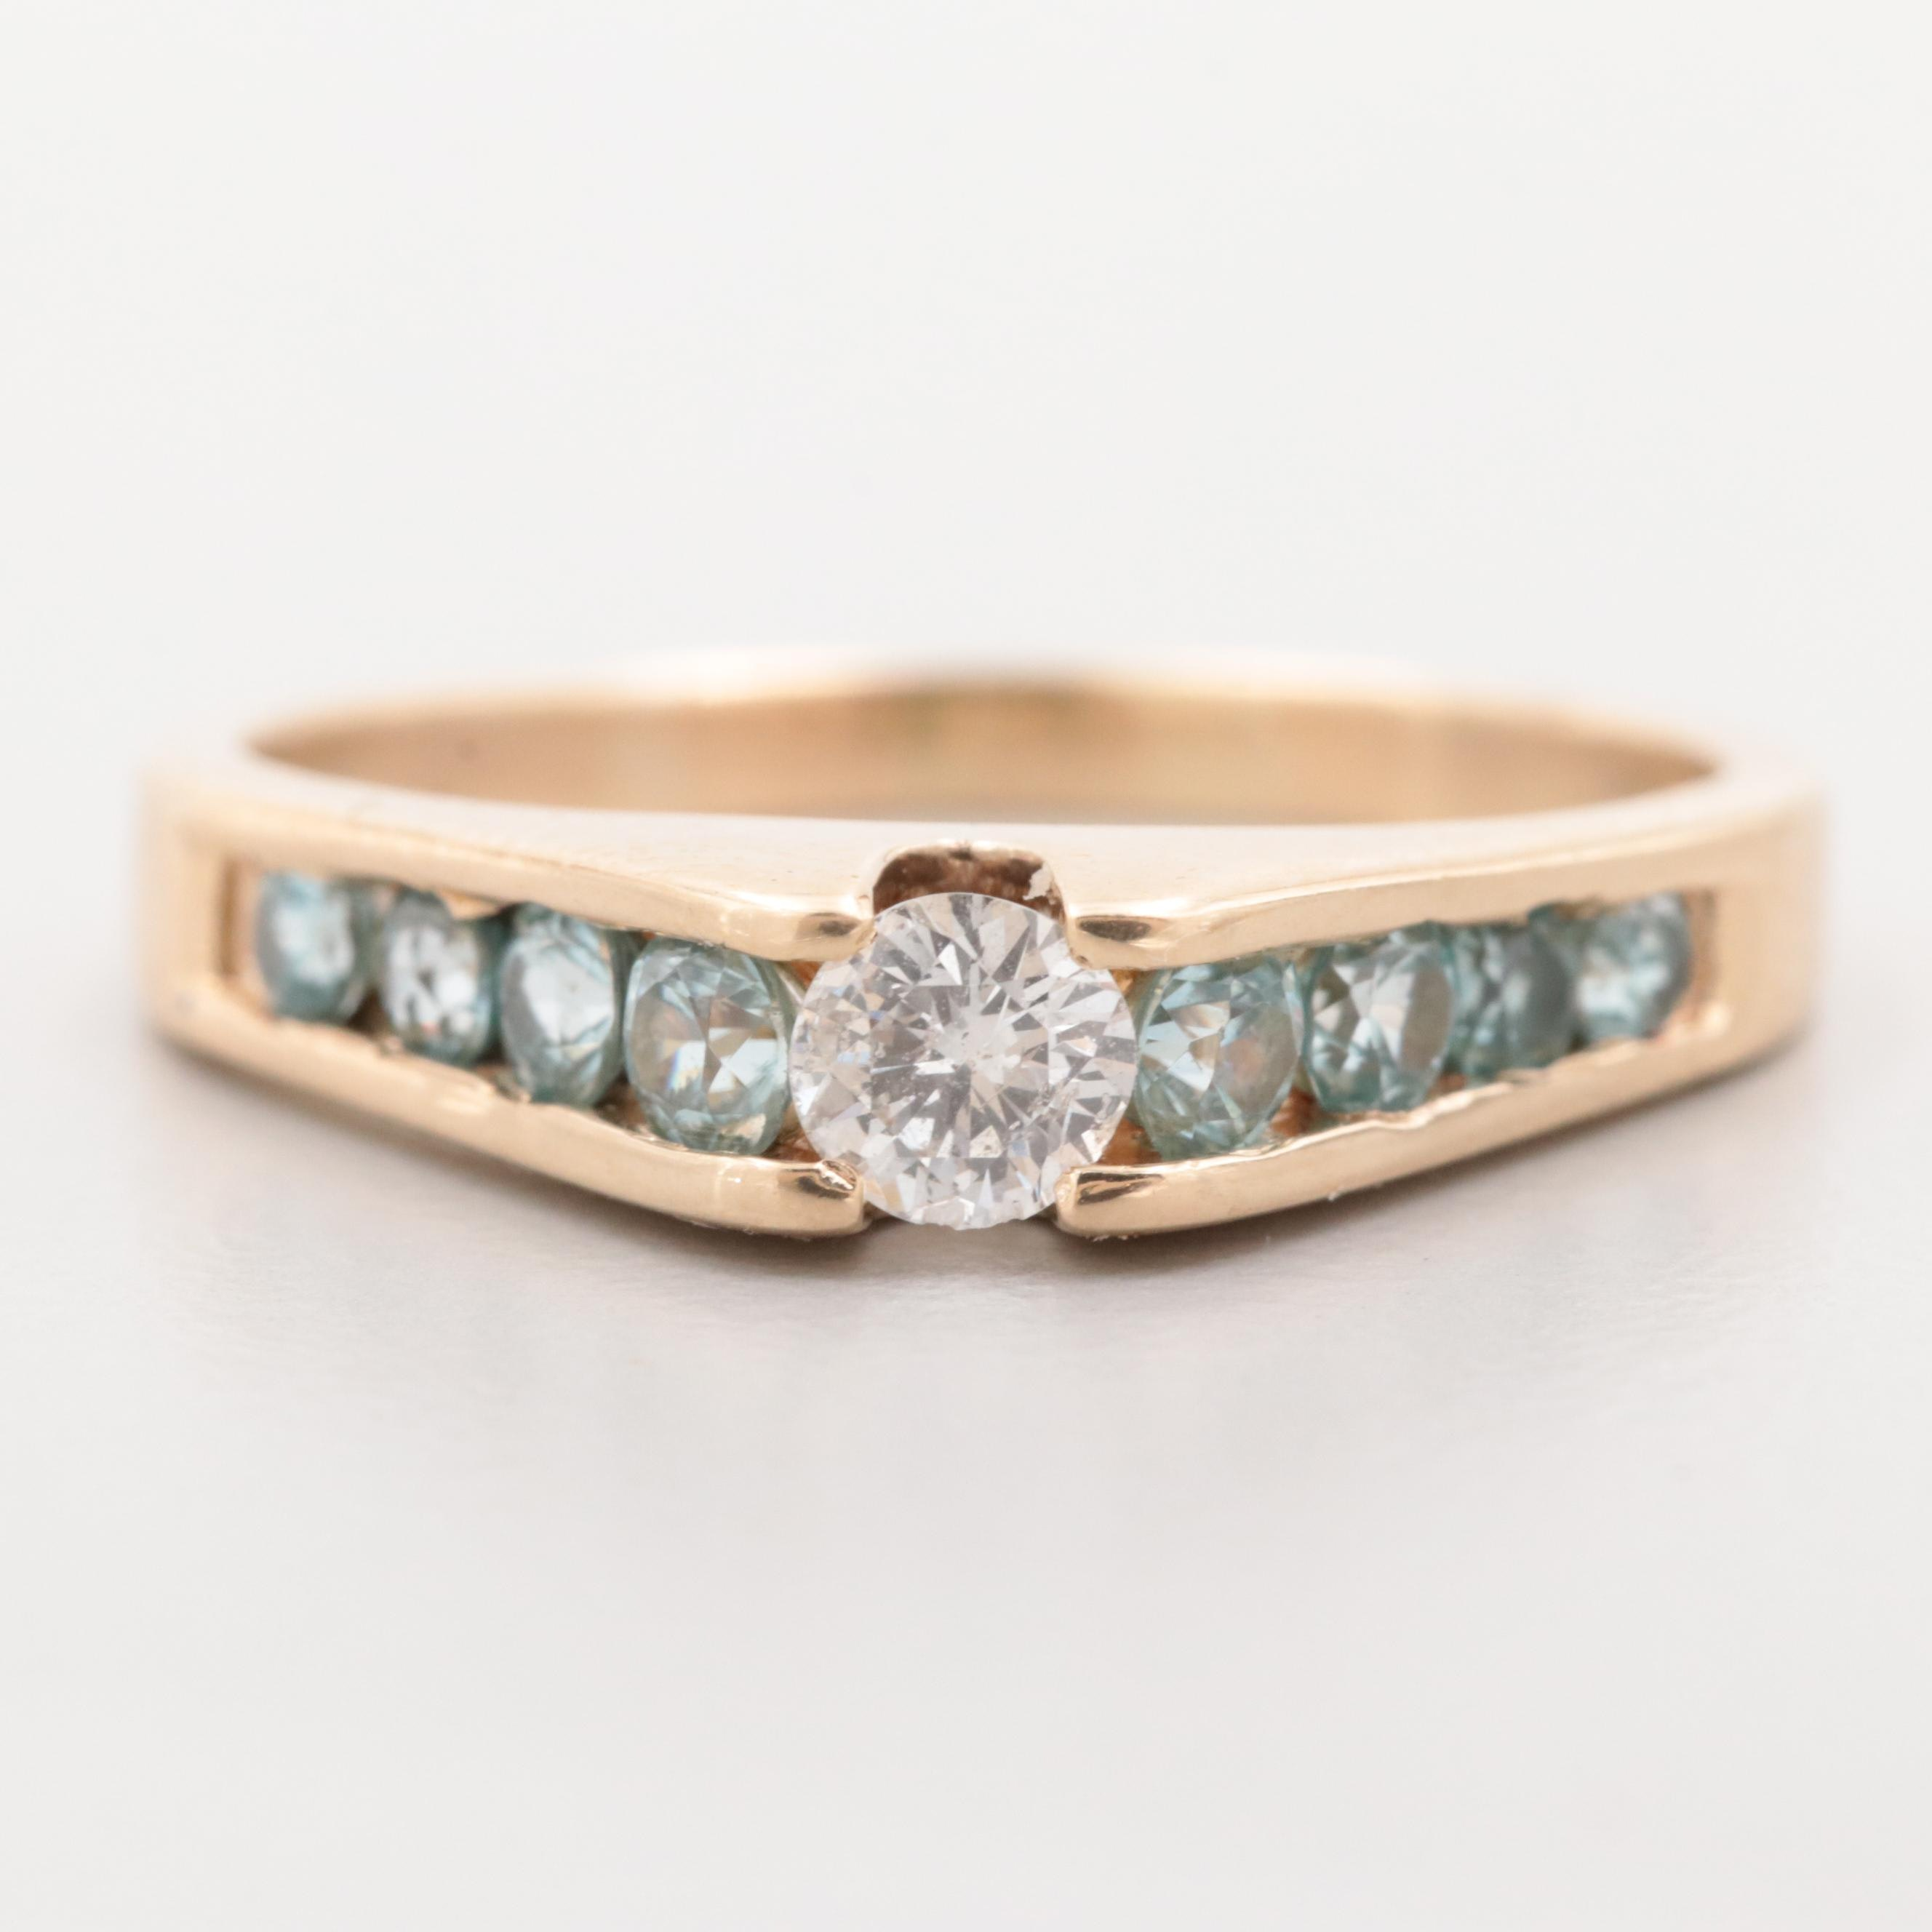 14K Yellow Gold Diamond and Zircon Ring